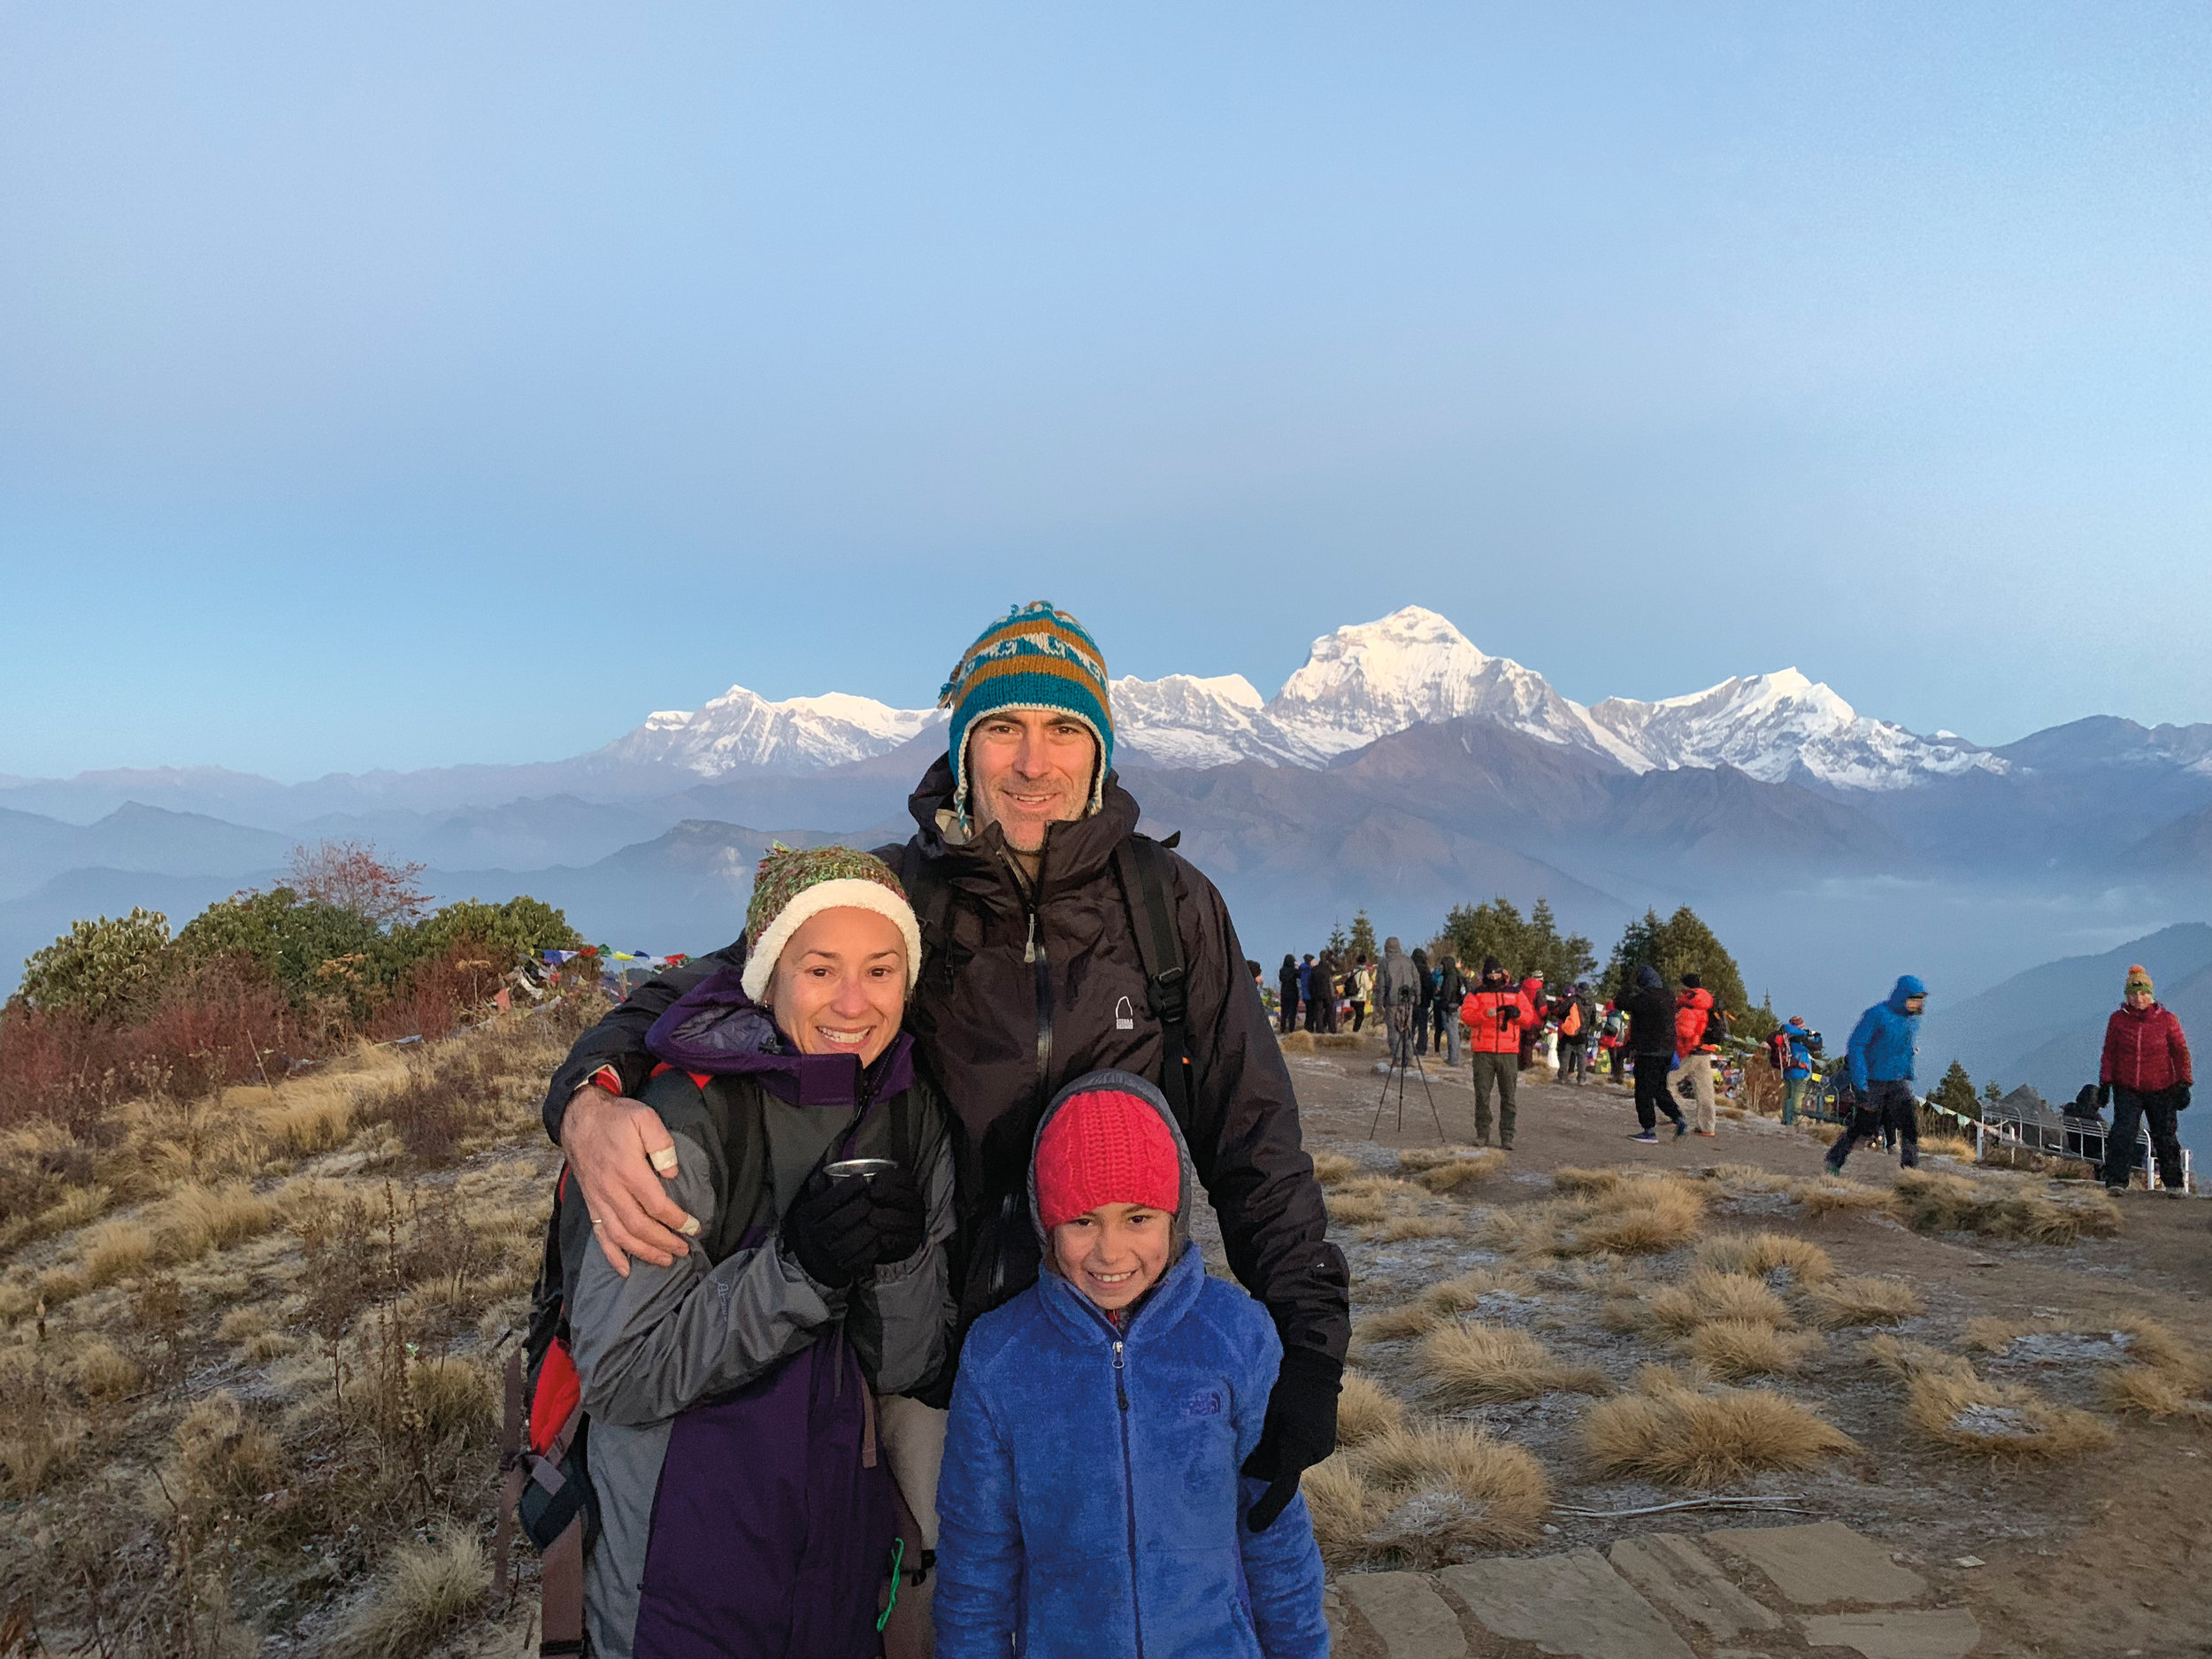 Trevor Patzer '92 with his wife, Mari, and their daughter, Sofie (8), in Nepal.